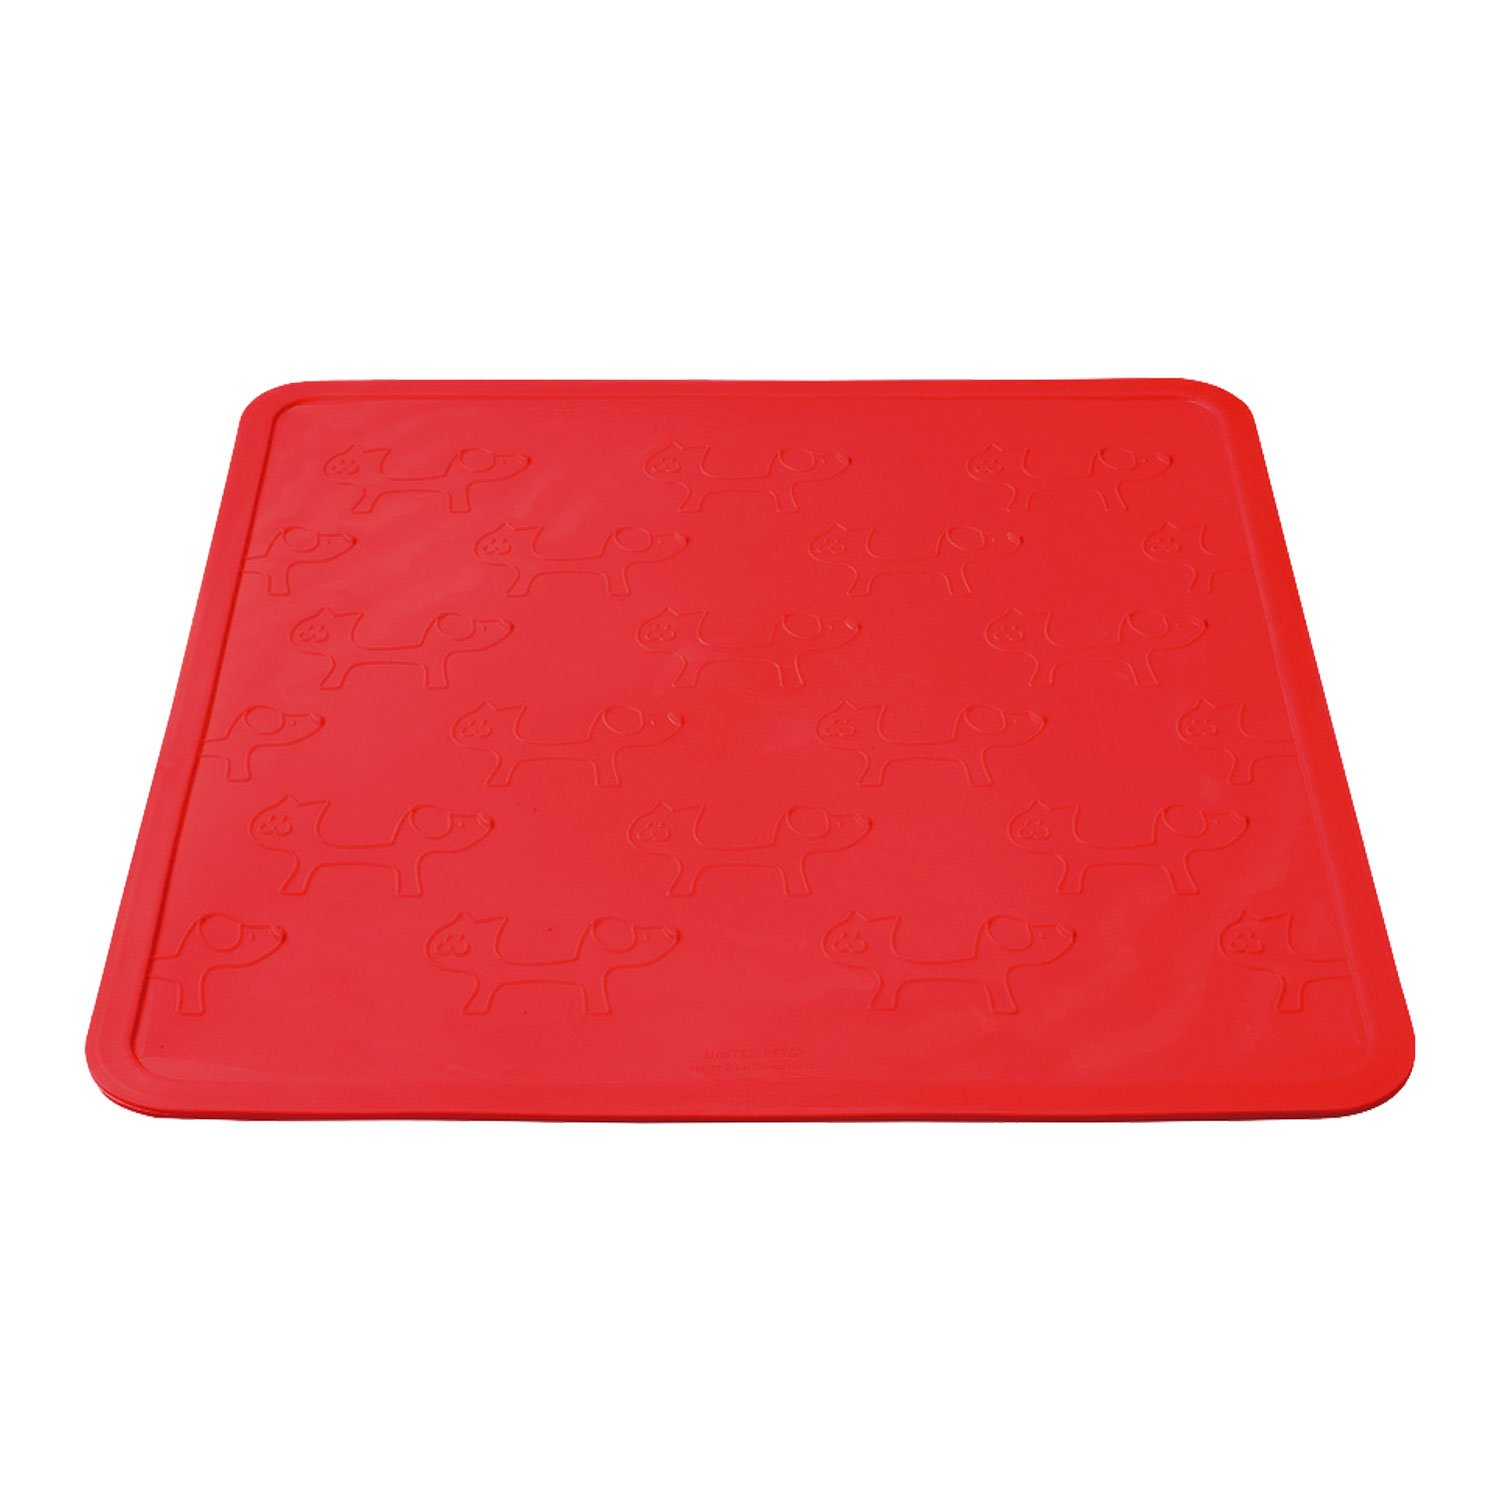 17.5-Inch by 17.5-Inch Petego United Pets Mustafa Pet Bowl Mat, Red, 17.5-Inch by 17.5-Inch